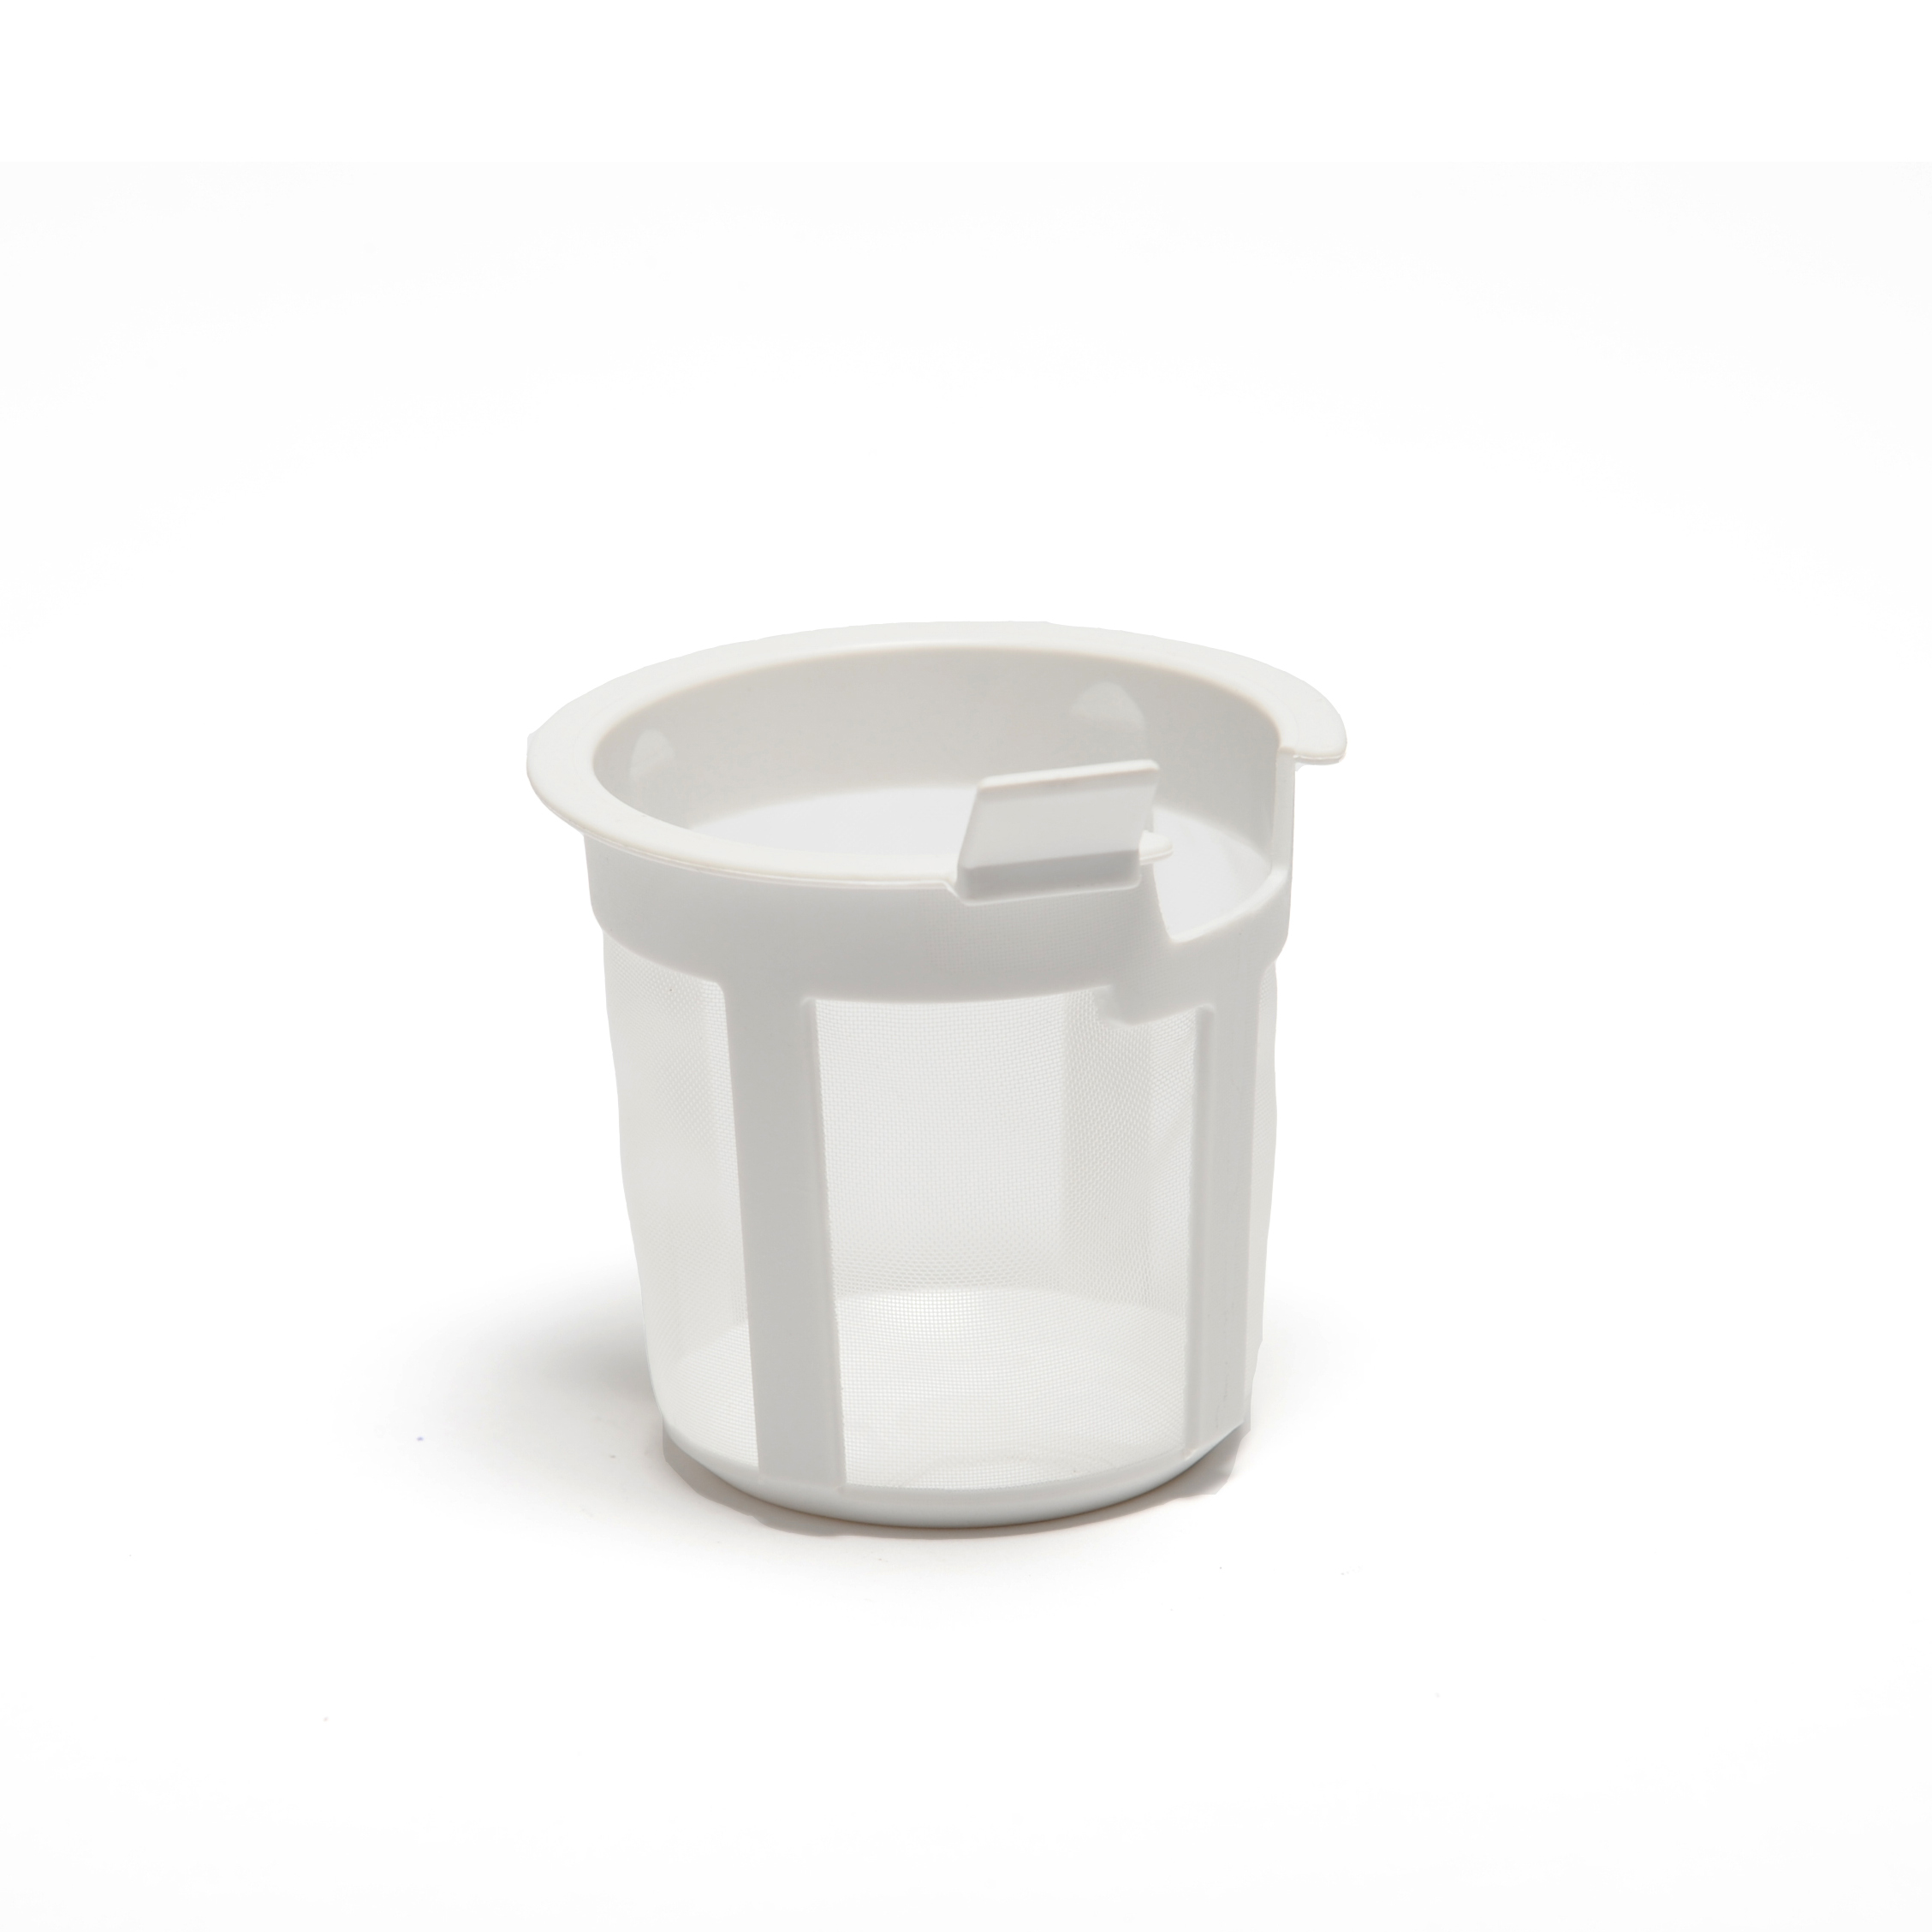 Chatsford 2-Cup White Filter